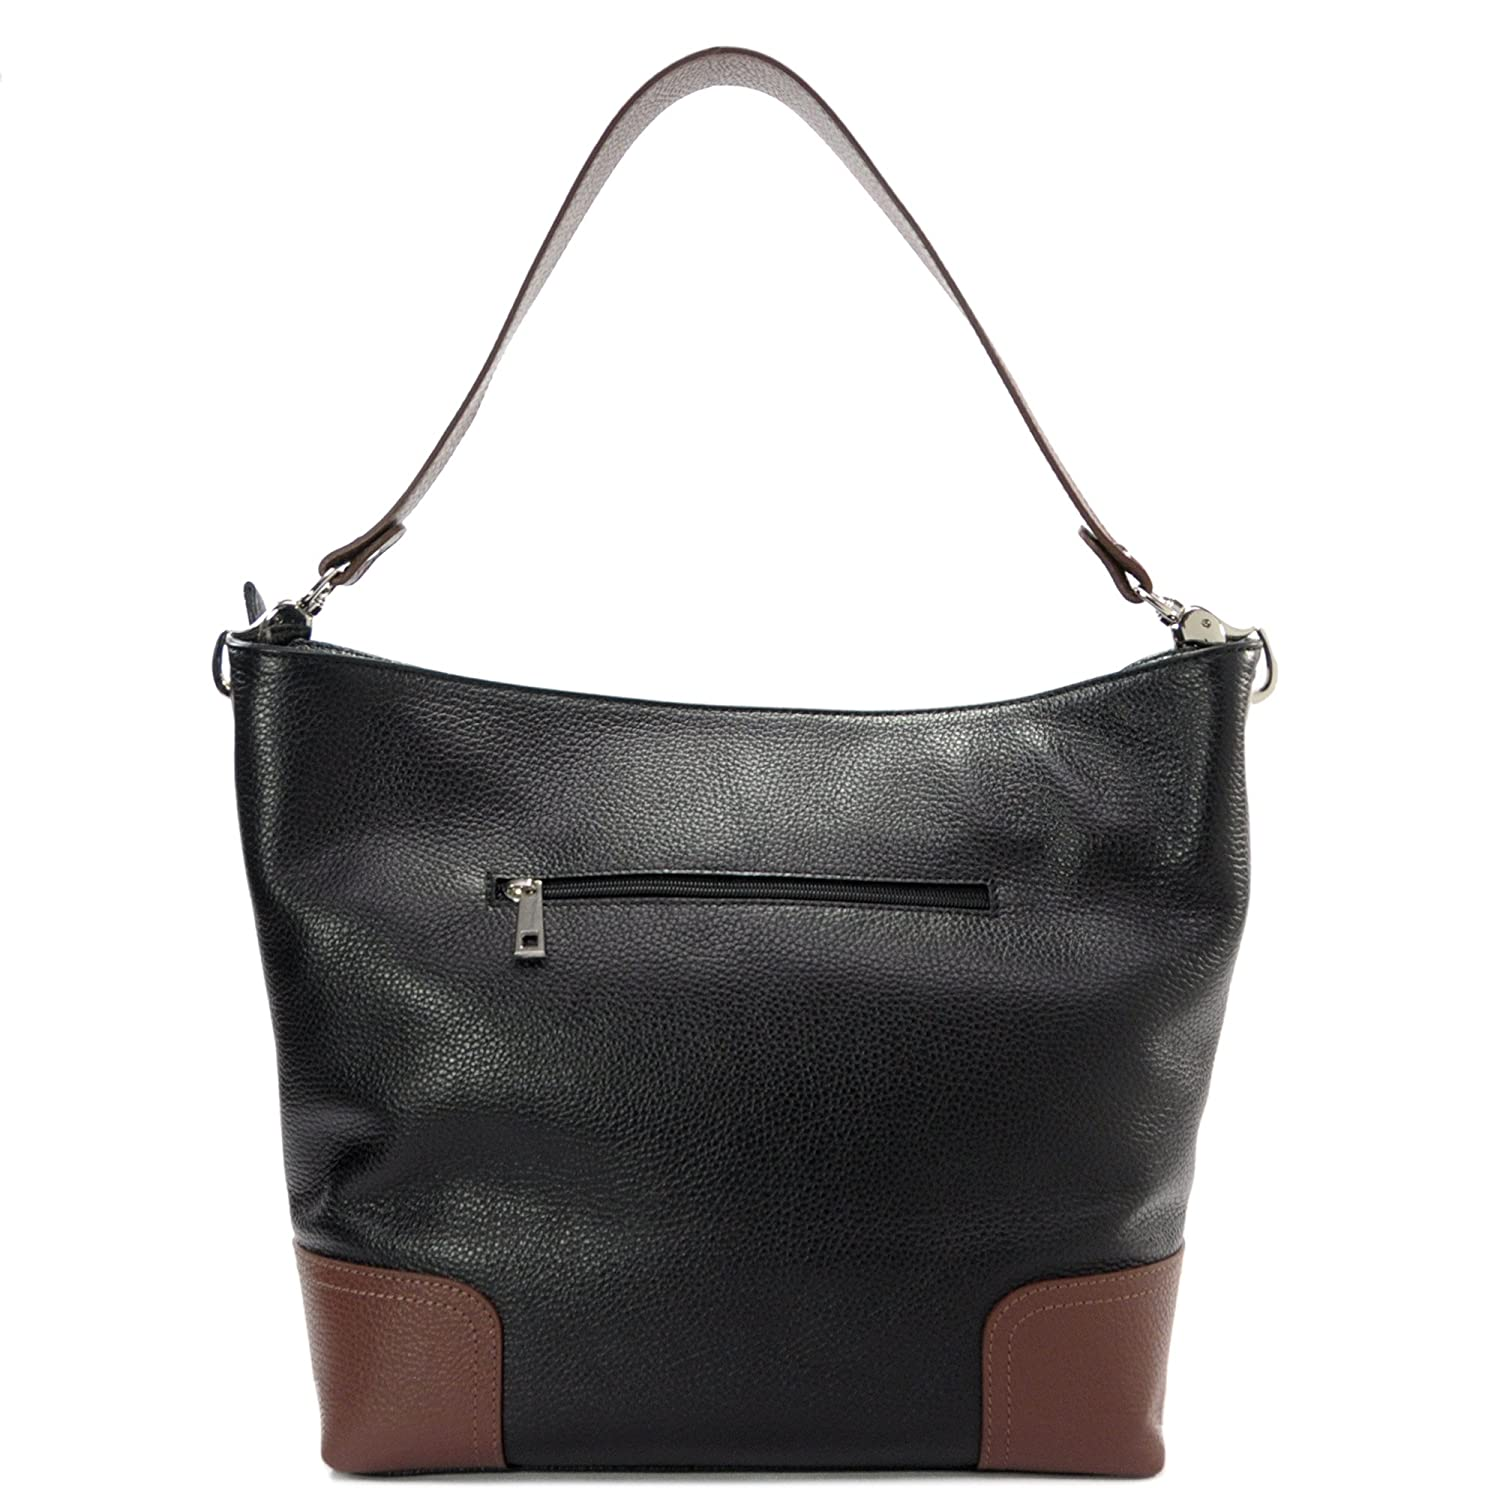 a9b0cd4214 Sabrina - Women s handbag genuine leather - Shoulder bag 100% Made in  Florence - Size 30-40x30x12 cm (LxHxL) - Mod.ZN.011-Black-Brown  Handbags   Amazon.com